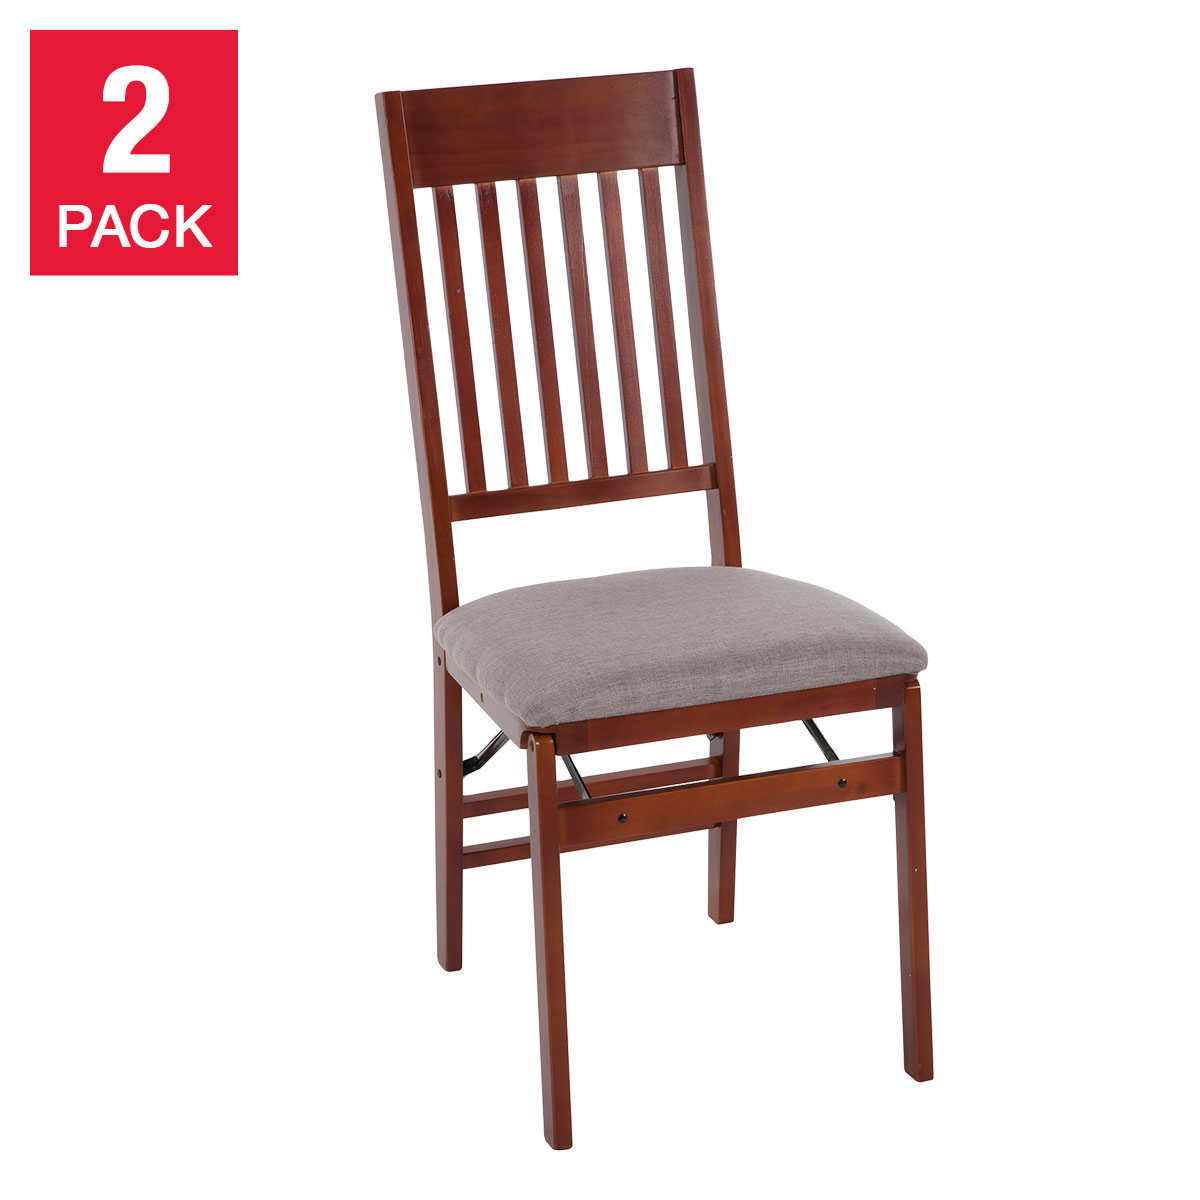 Mission Wood Folding Chairs 2 Pack